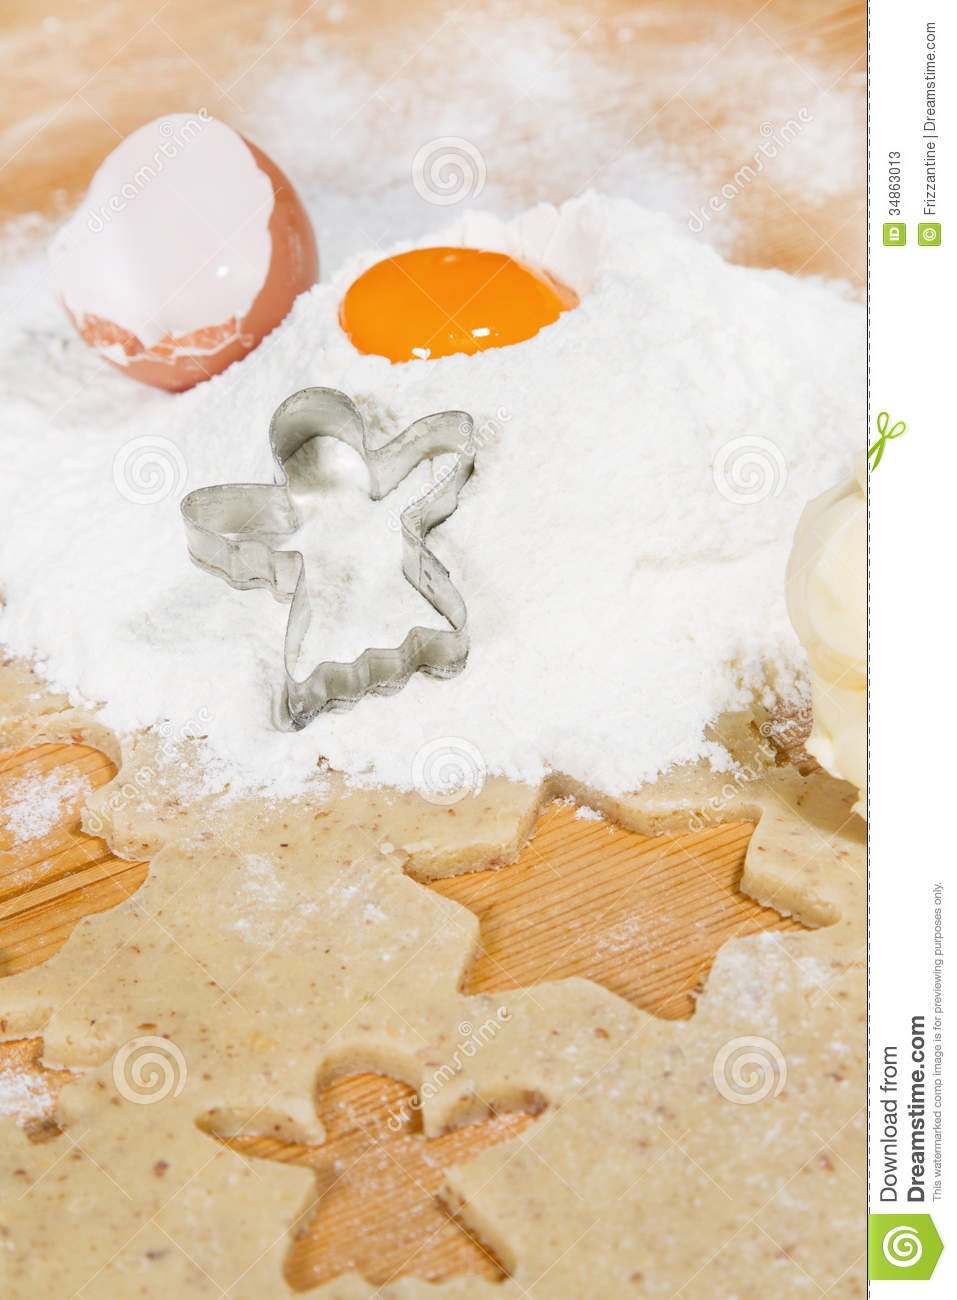 Christmas Baking: Snow Angel Cutter In Flour With Egg Yolk Stock ...